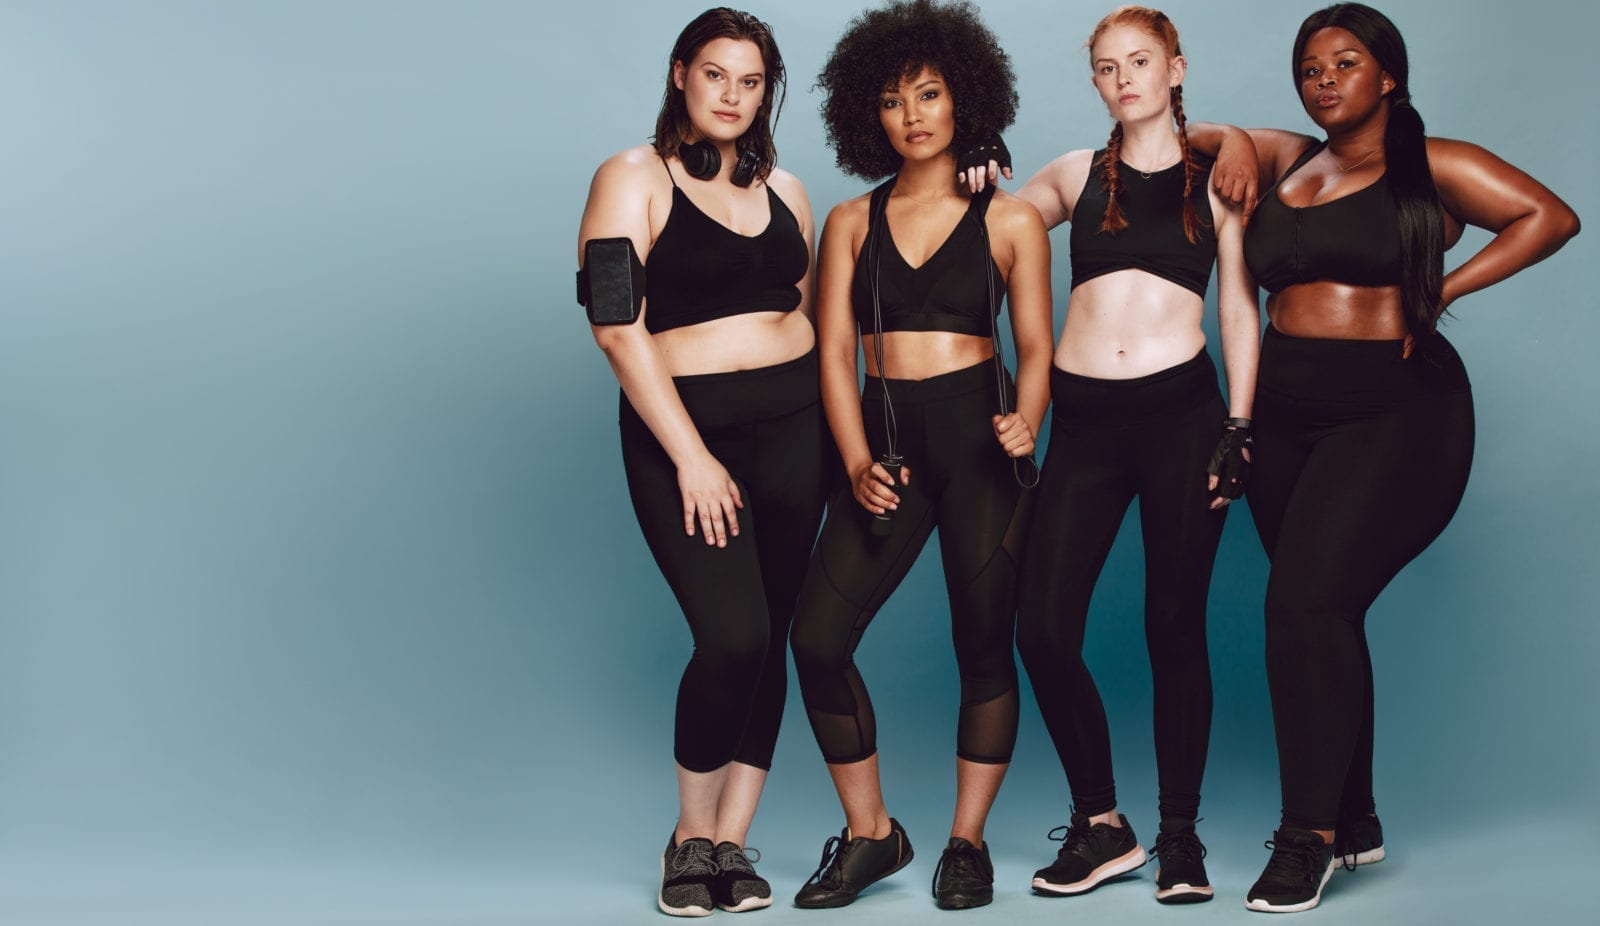 Full length of multi-ethnic women with in sportswear standing together over grey background. Three women of different race, figure type and size in fitness clothing.